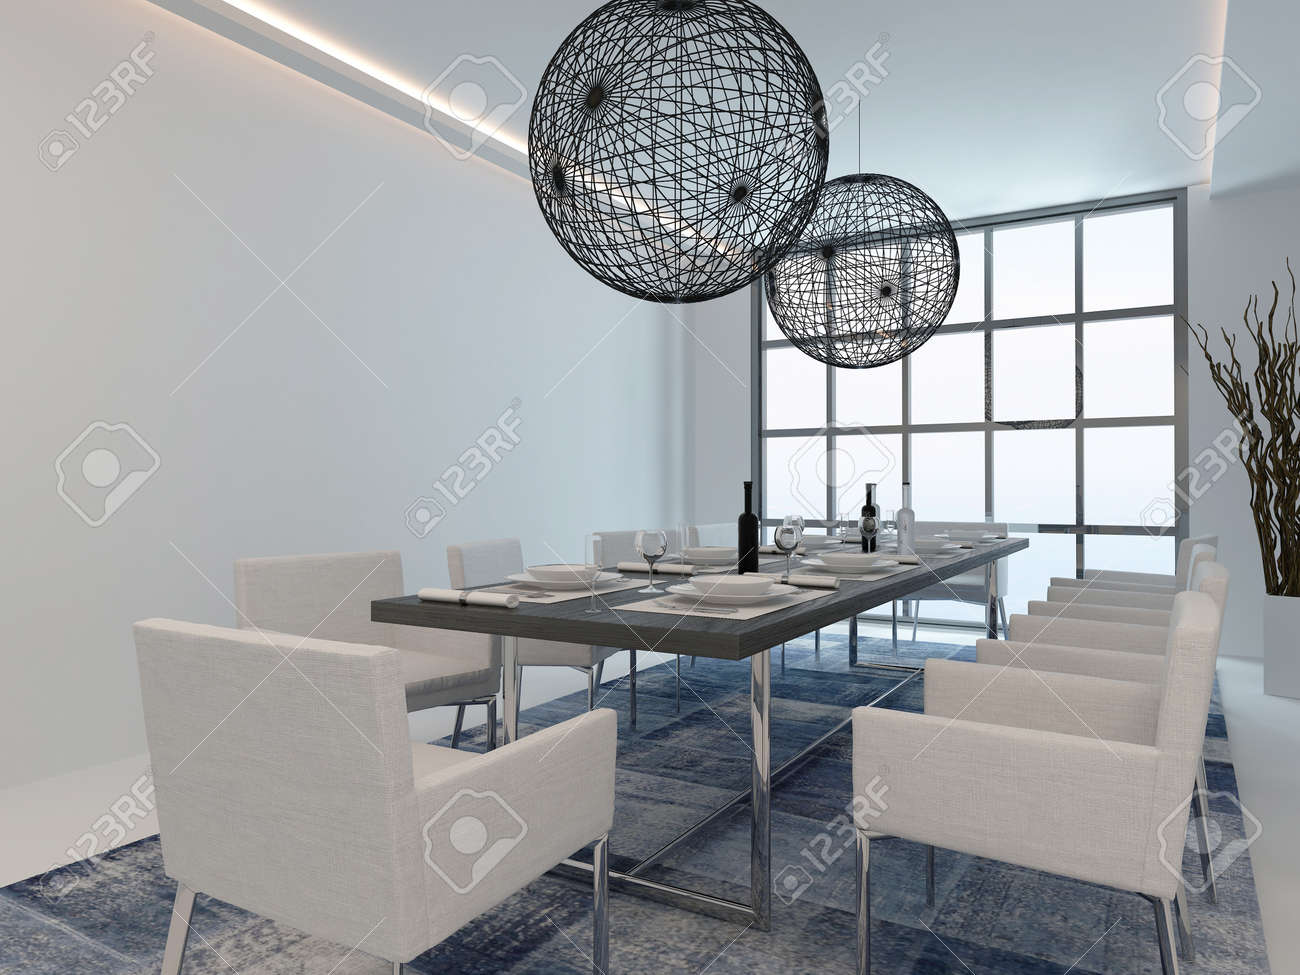 Nice Dining Room Interior With Dining Table And Modern Window Stock ...